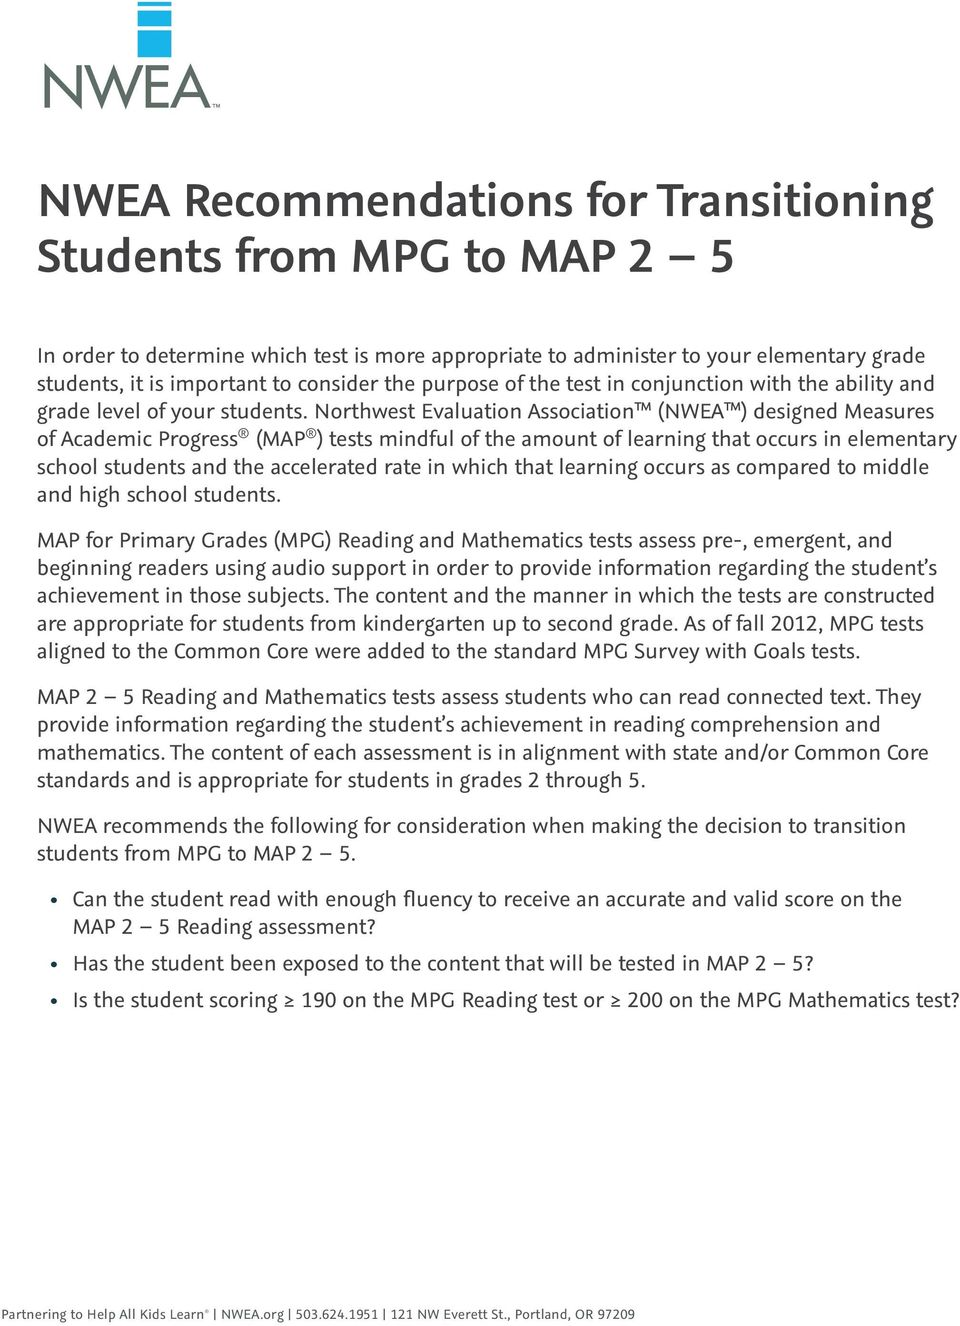 Northwest Evaluation Association (NWEA ) designed Measures of Academic Progress (MAP ) tests mindful of the amount of learning that occurs in elementary school students and the accelerated rate in